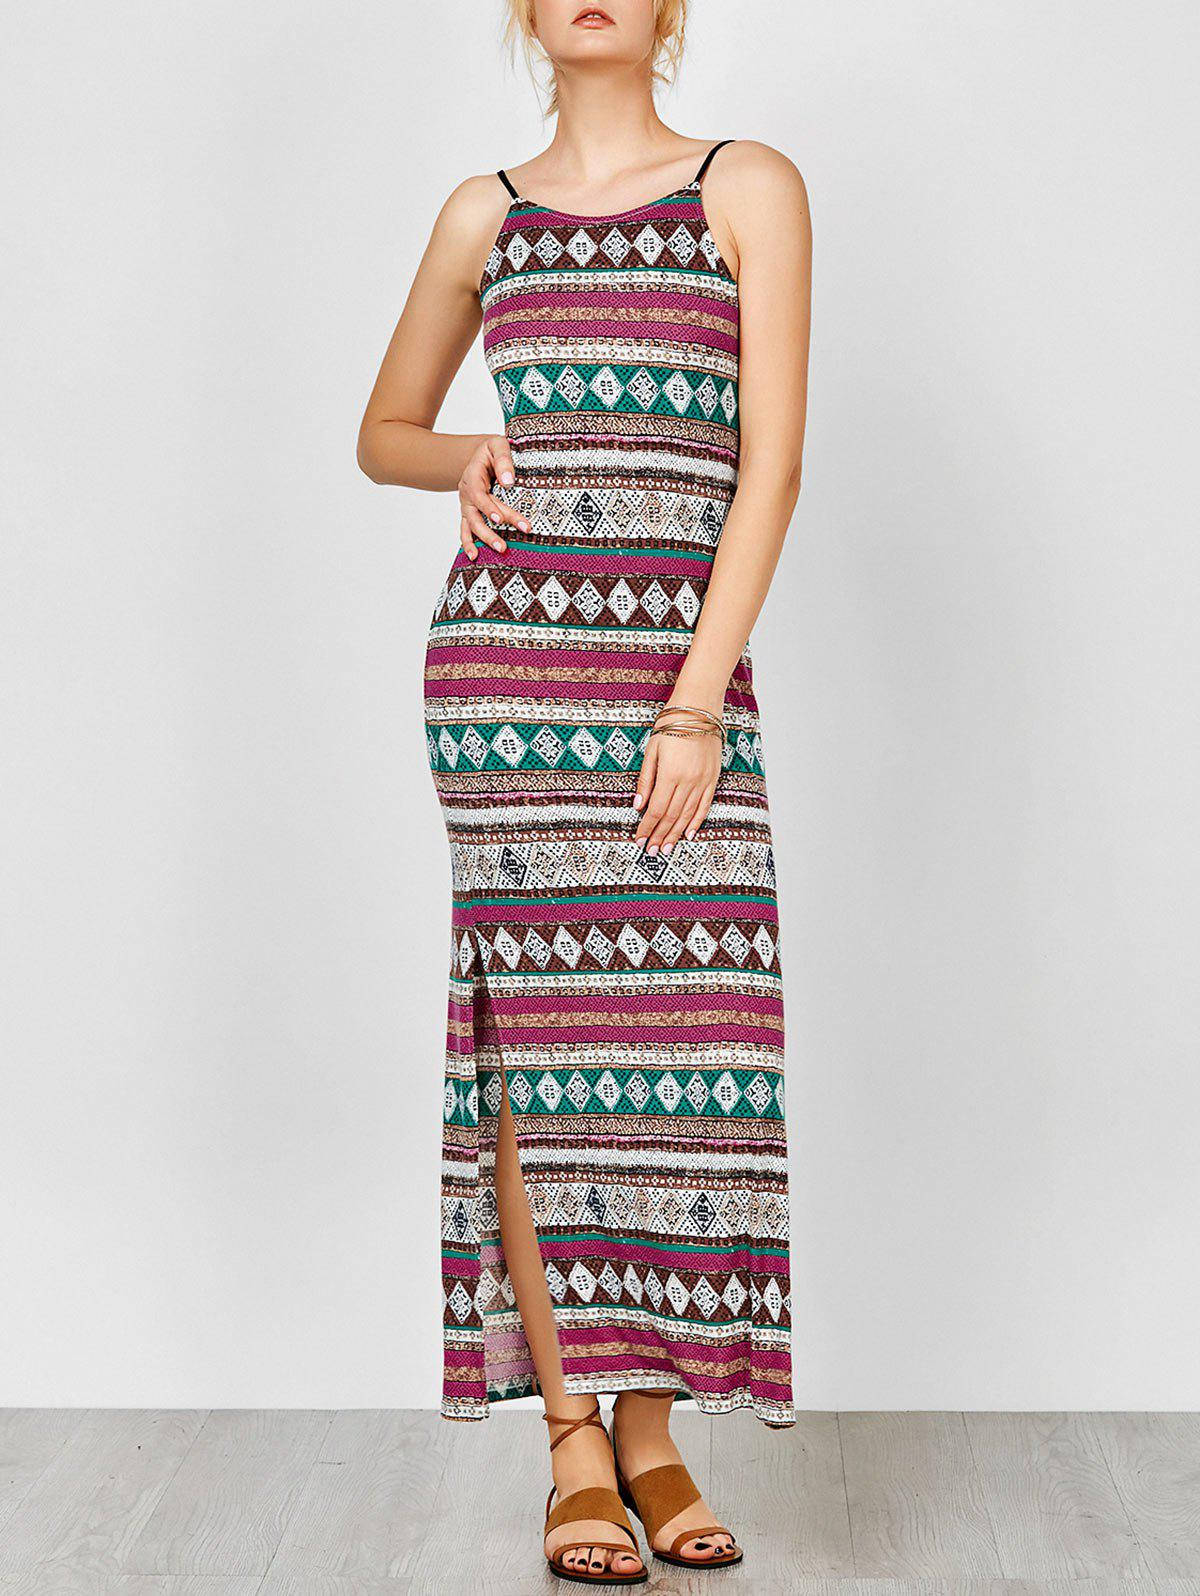 Spaghetti Strap Backless Maxi Bohemian Dress - COLORMIX XL